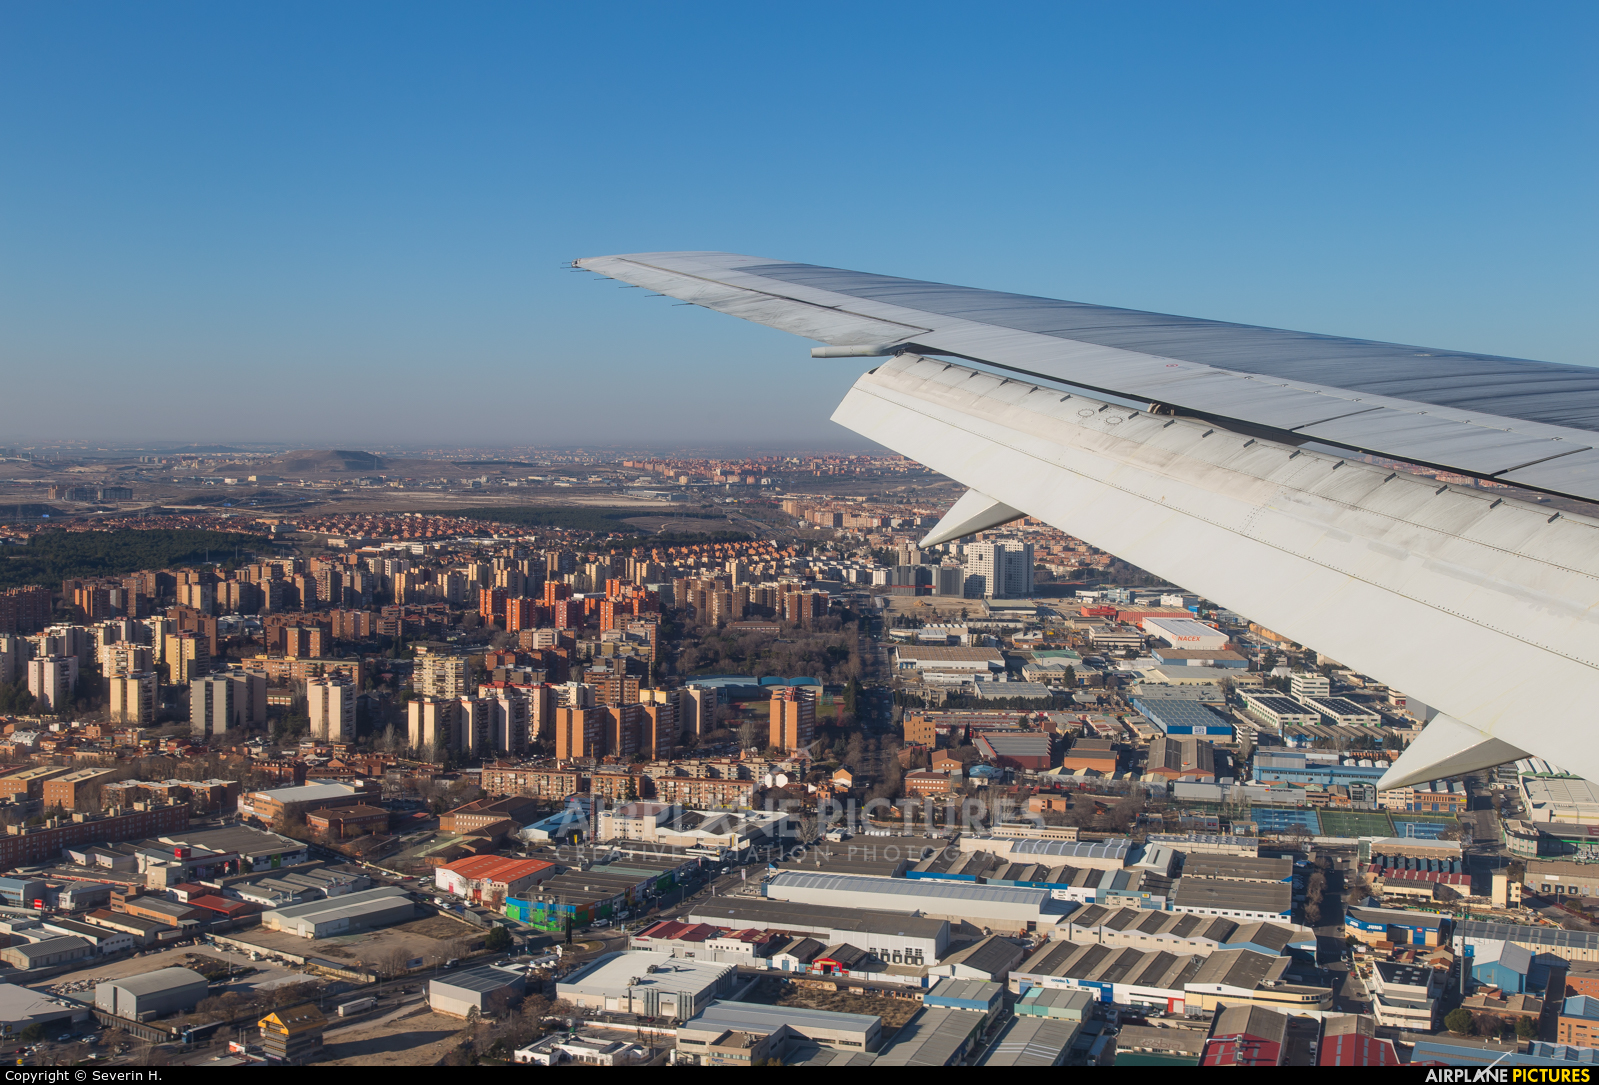 British Airways G-BZHA aircraft at In Flight - Spain